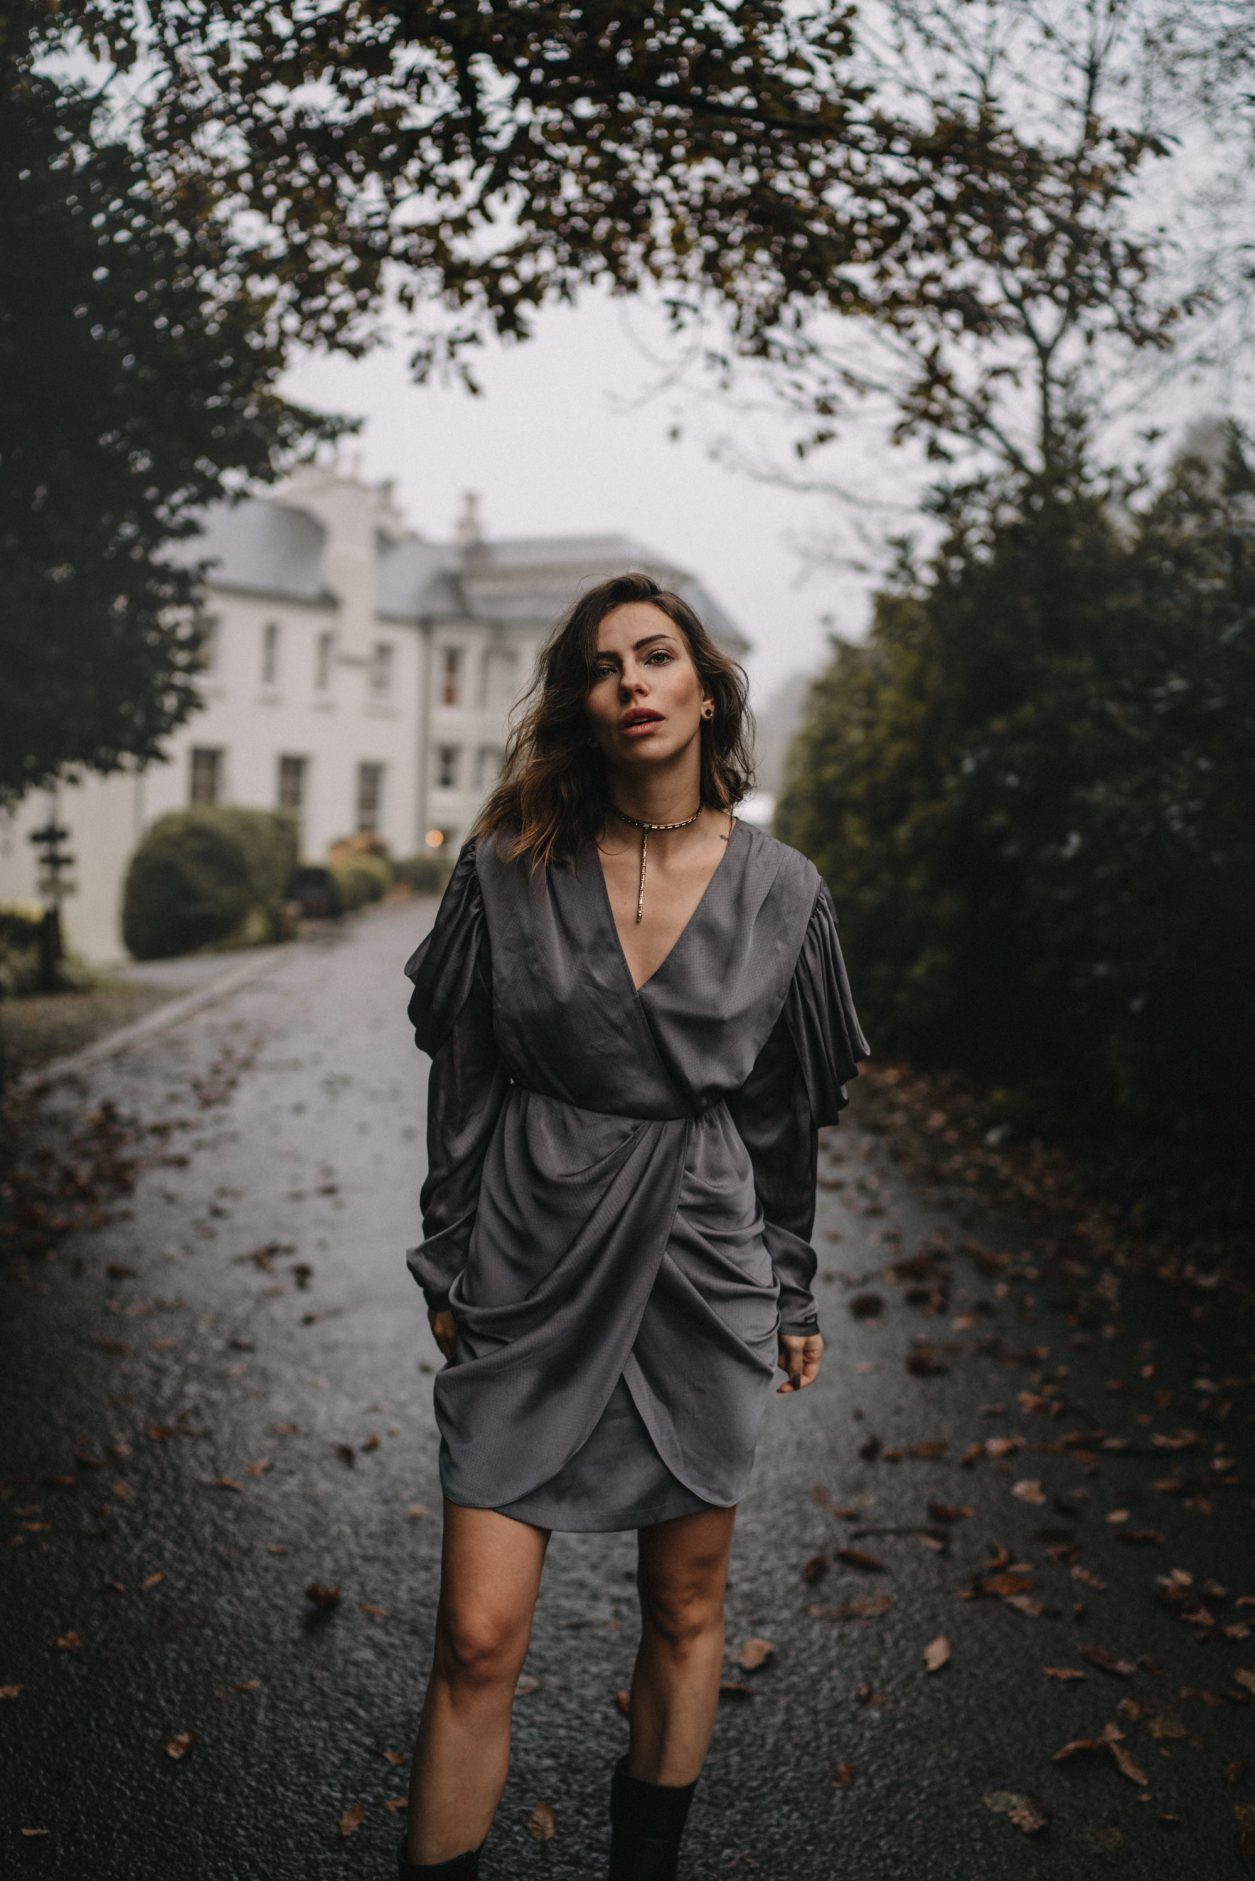 Fashion Editorial via blogger Masha Sedgwick | mood: foggy, moddy, dark woods, spooky, Halloween, festive, vintage | grey party dress via Designers Remix (sustainable) | Location: Beech Hill House Hotel in Northern Ireland (Londonderry) |  in the movement, running, fog